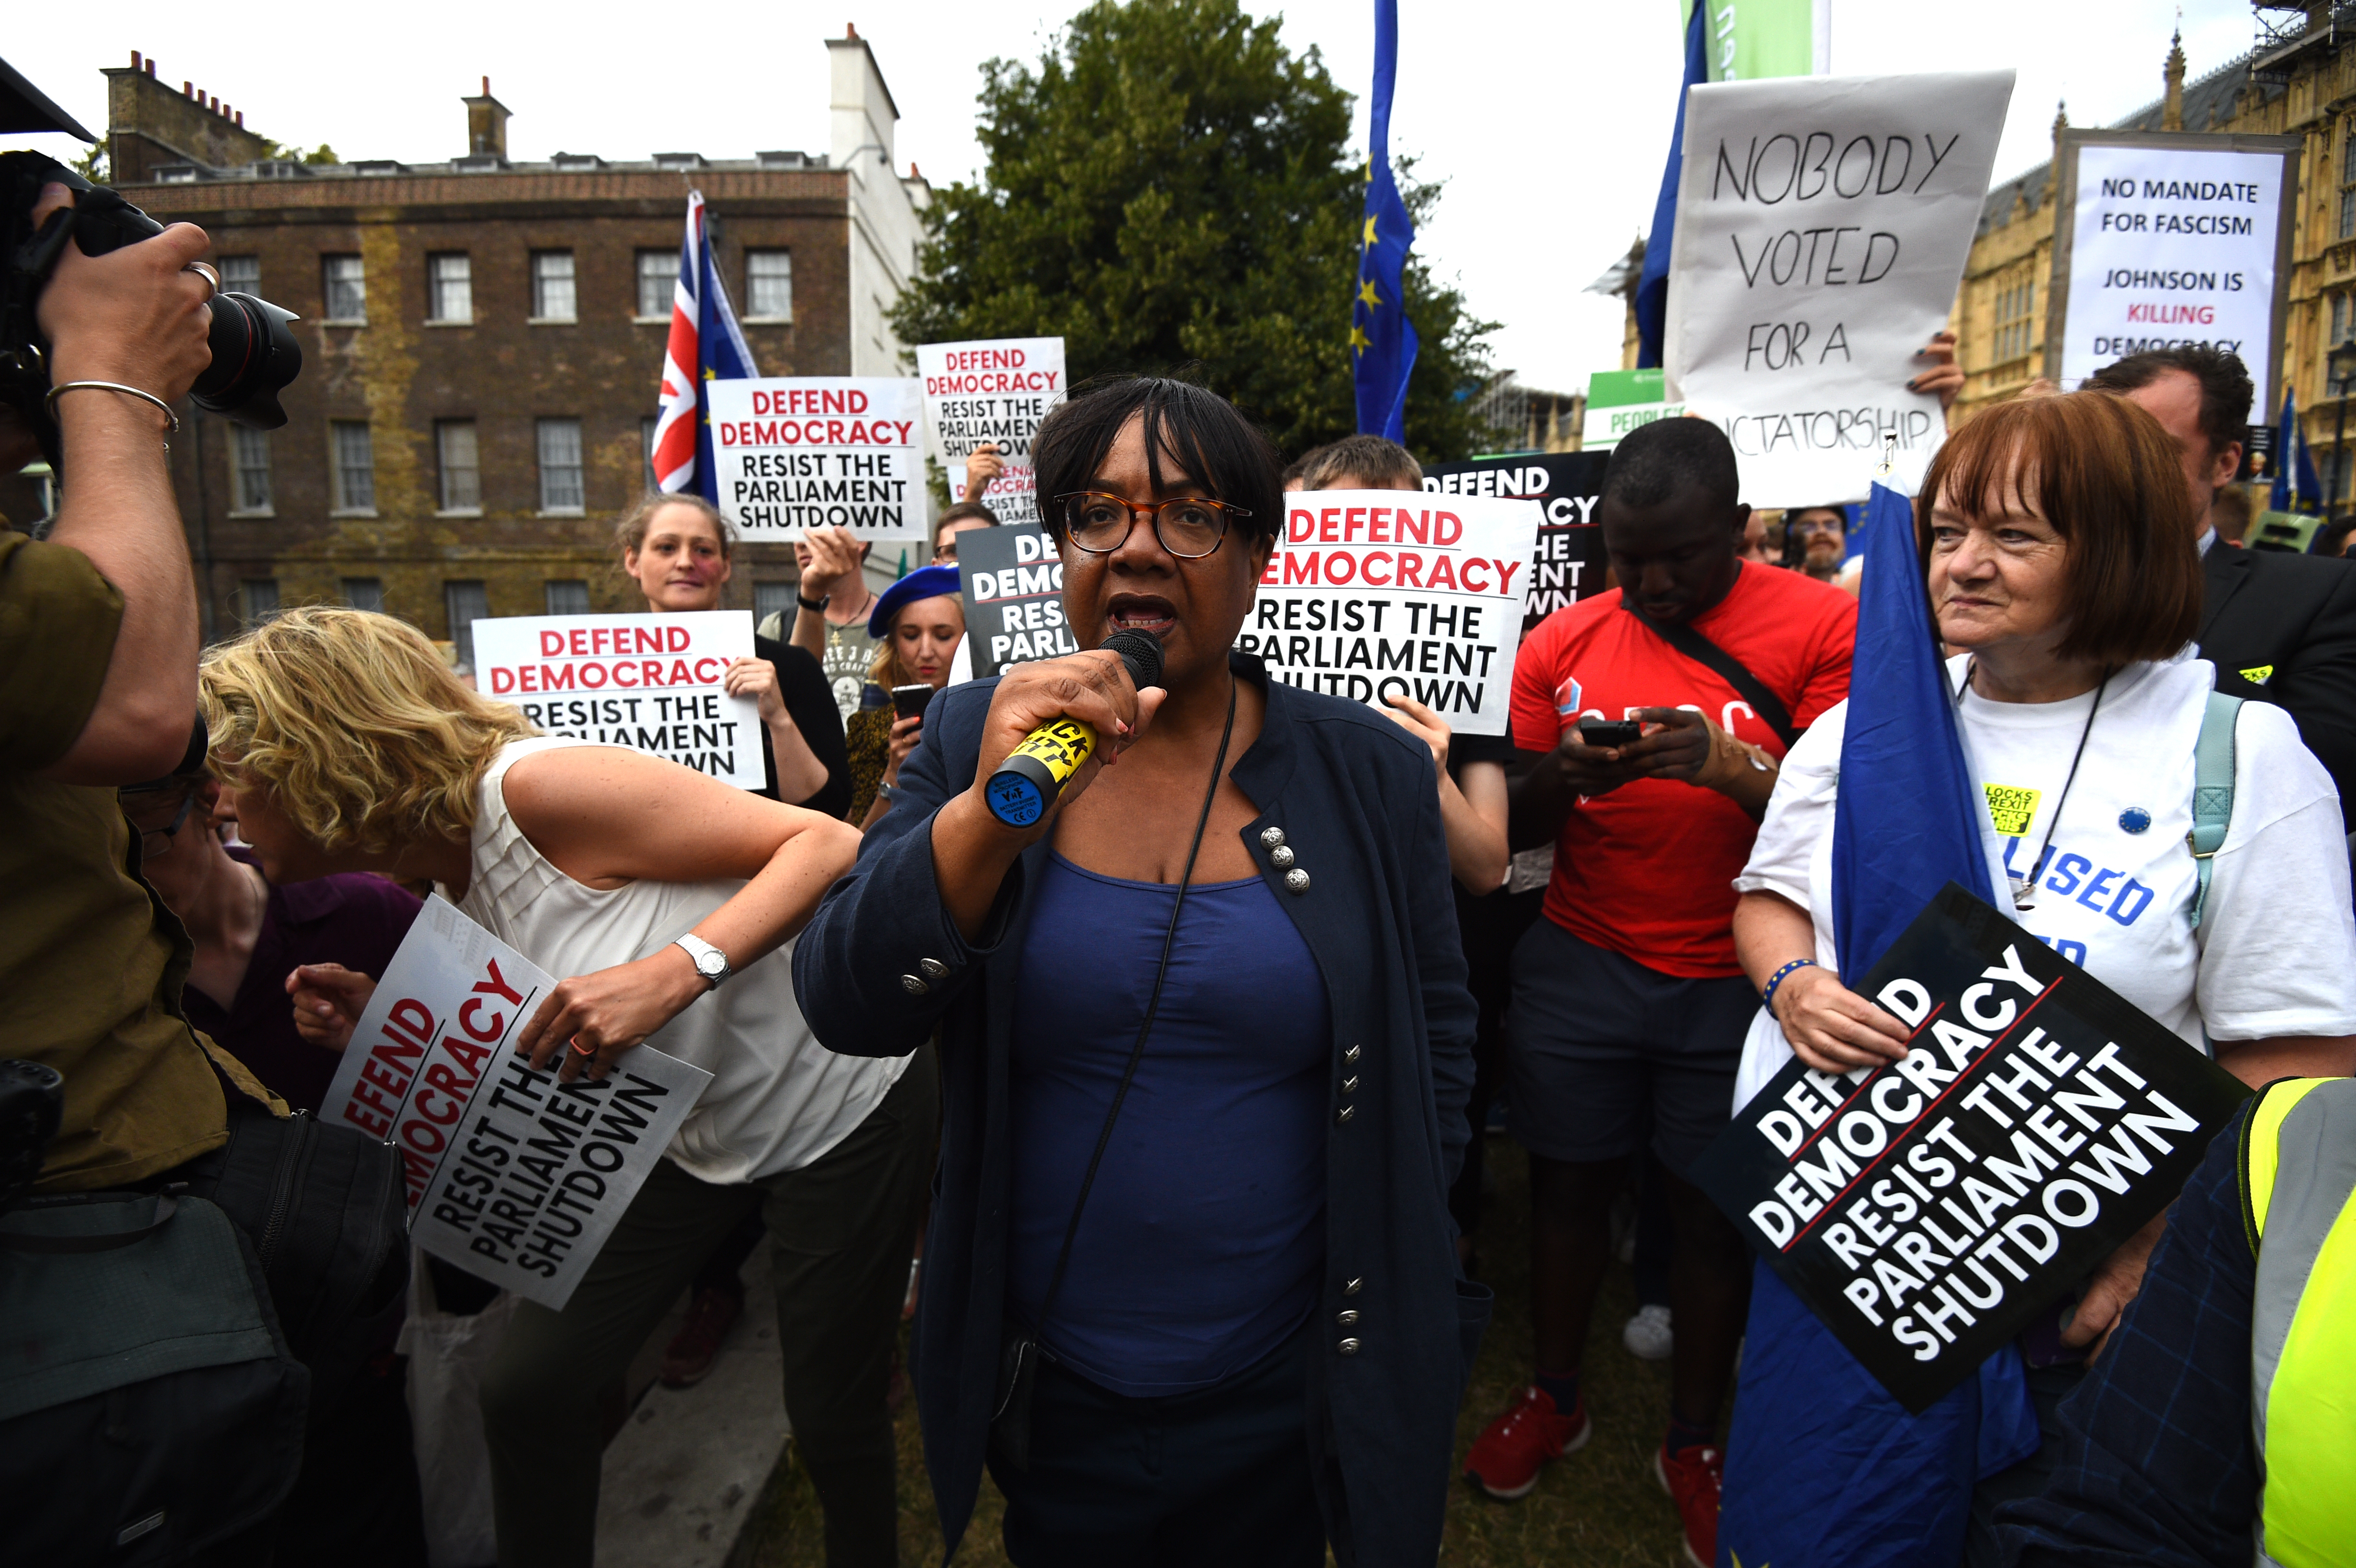 Shadow home secretary Diane Abbott addresses protesters outside the Houses of Parliament, London, to demonstrate against Prime Minister Boris Johnson temporarily closing down the Commons from the second week of September until October 14 when there will be a Queen's Speech to open a new session of Parliament.